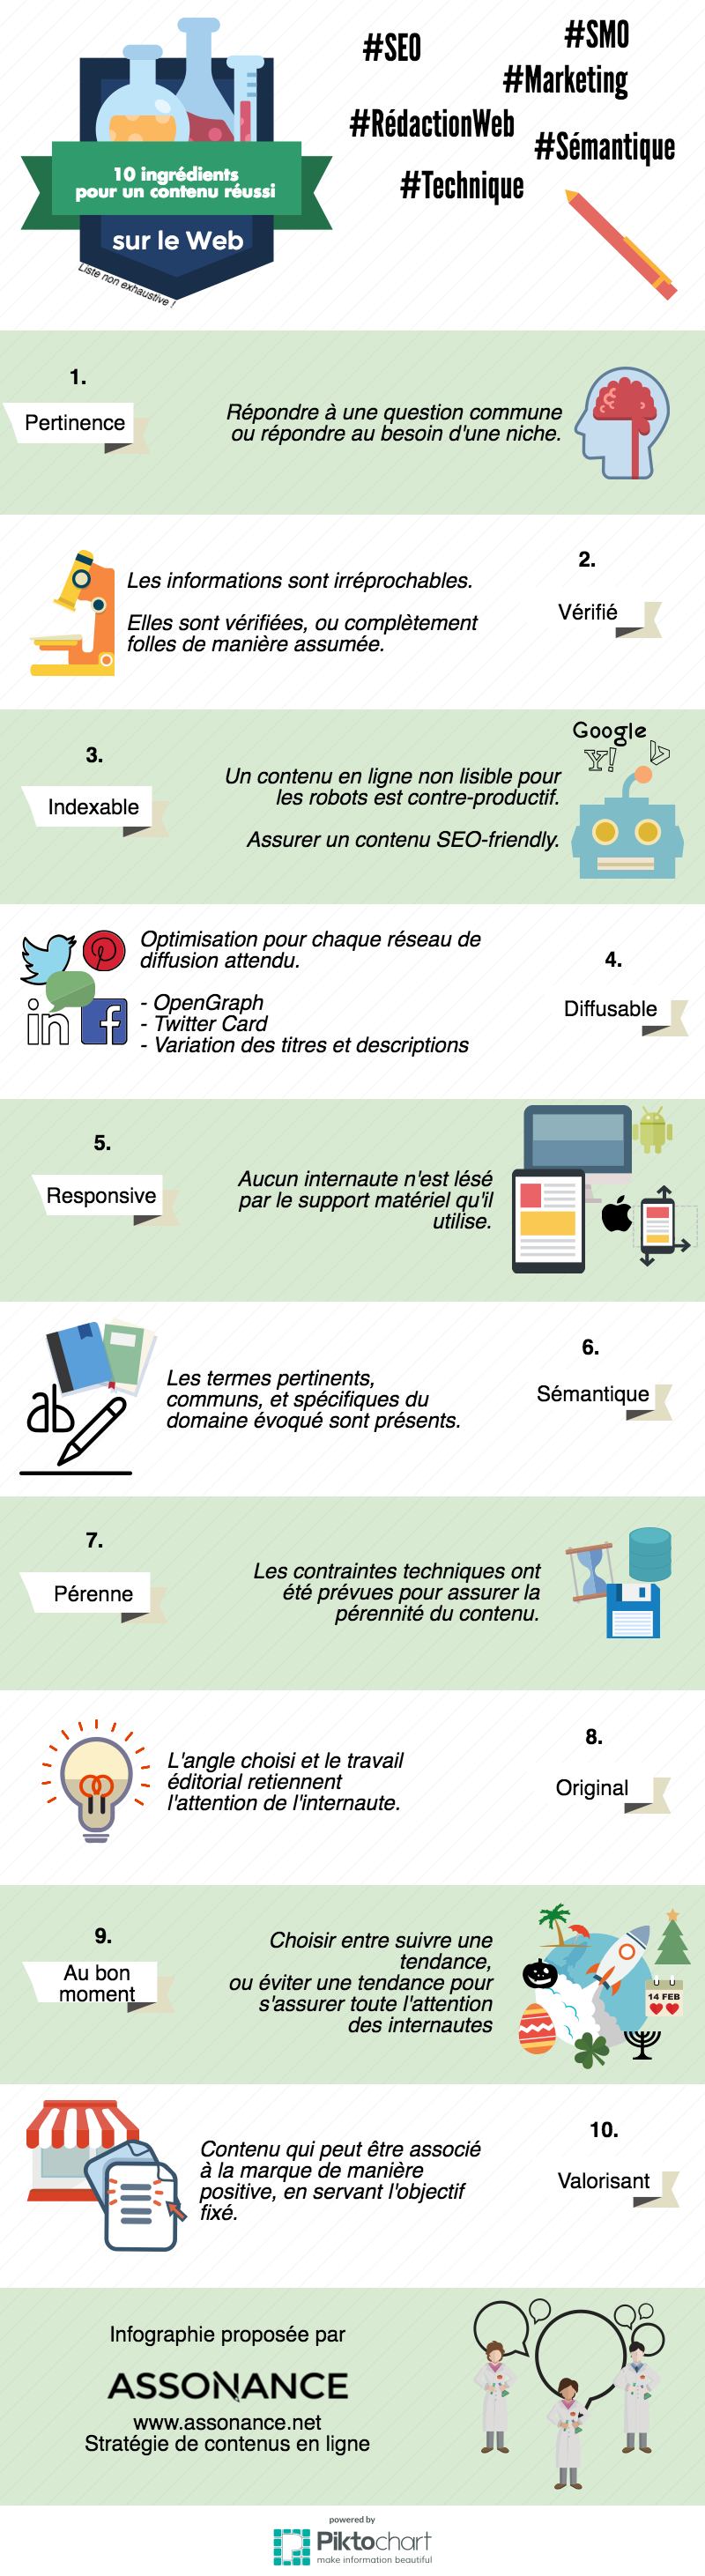 infographie-assonance_checklist-content-marketing